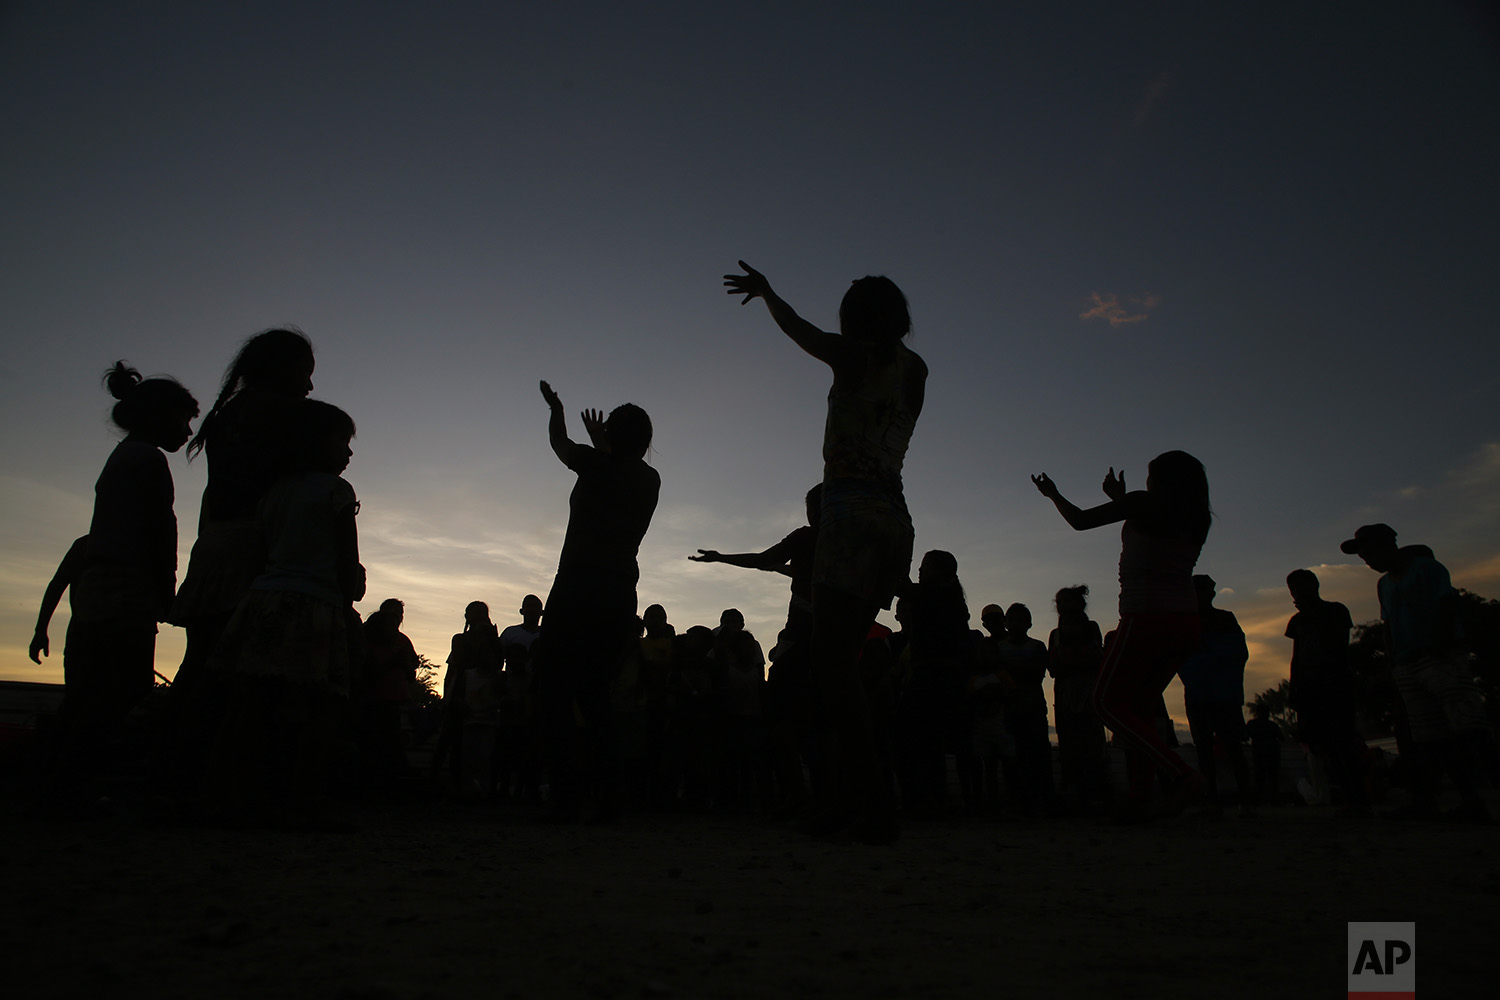 In this March 10, 2018 photo, Warao women dance in the outdoor area of a shelter, in Pacaraima, Brazil. (AP Photo/Eraldo Peres)